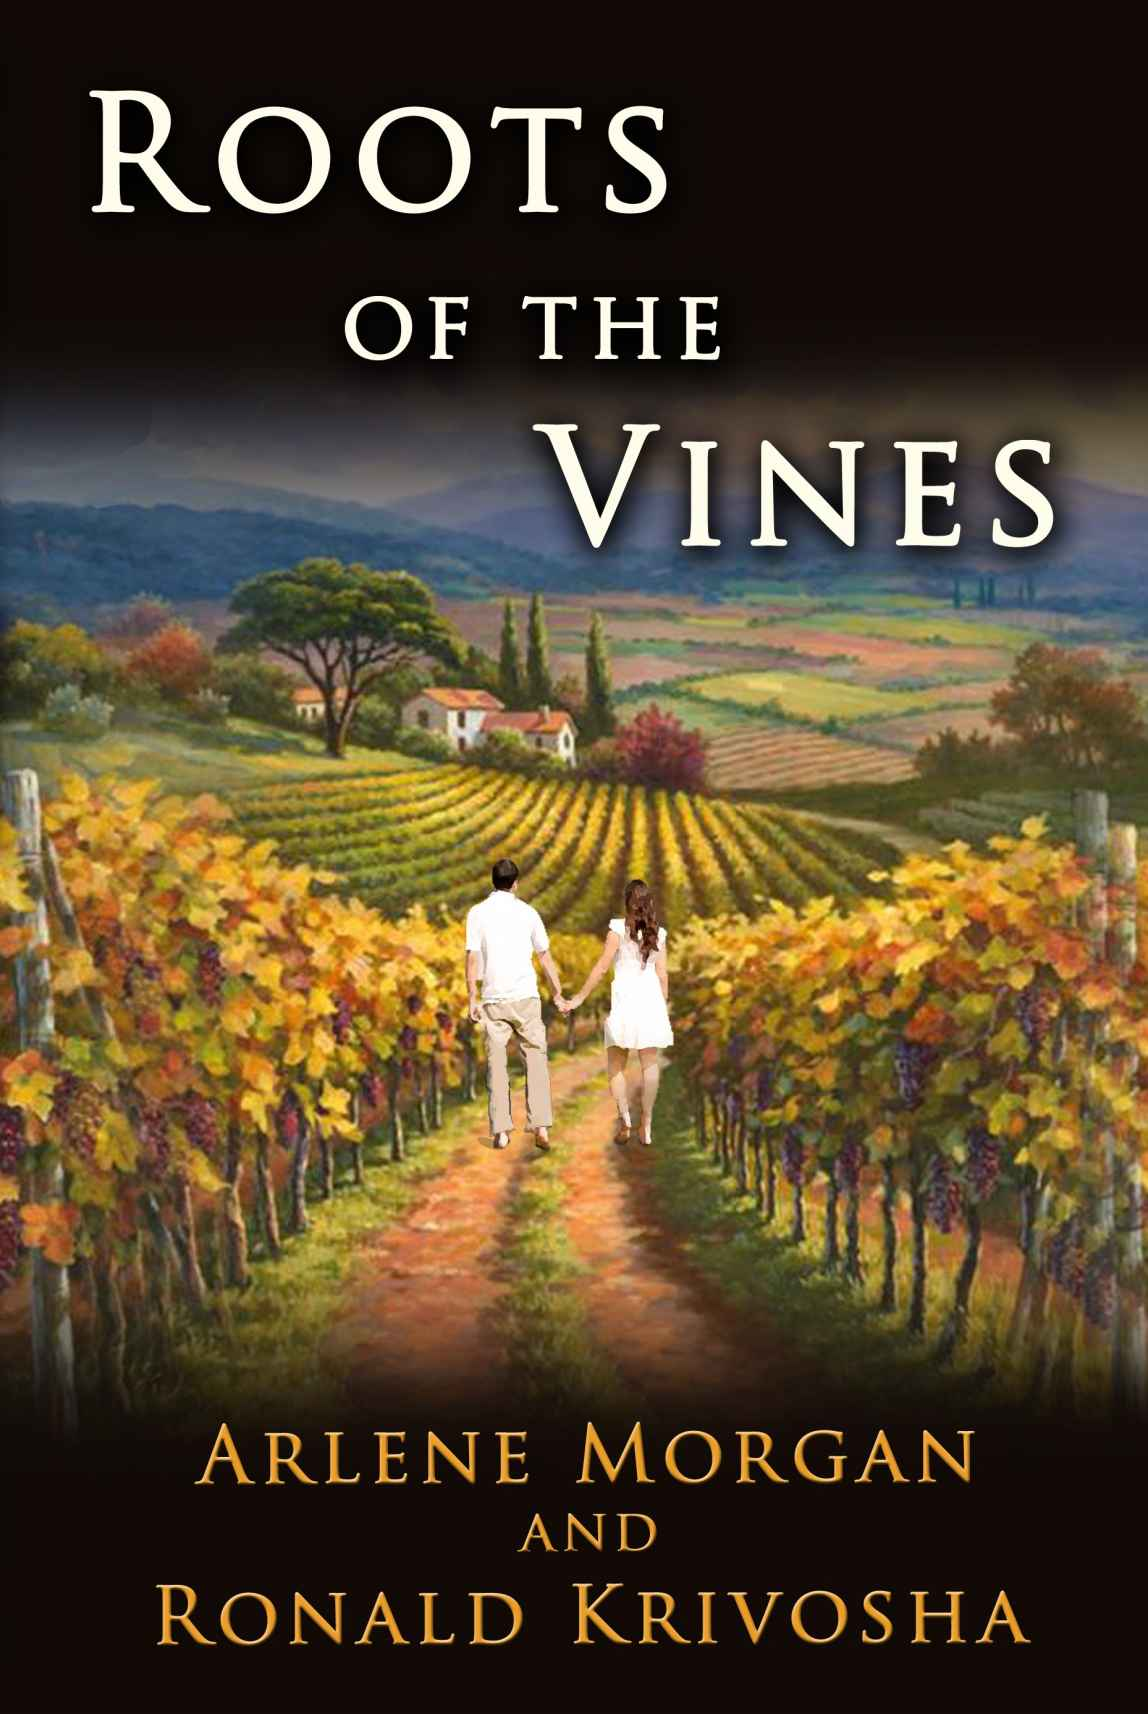 Roots of the Vines by Arlene Morgan and Ronald Krivosha (Fiction, Romance)